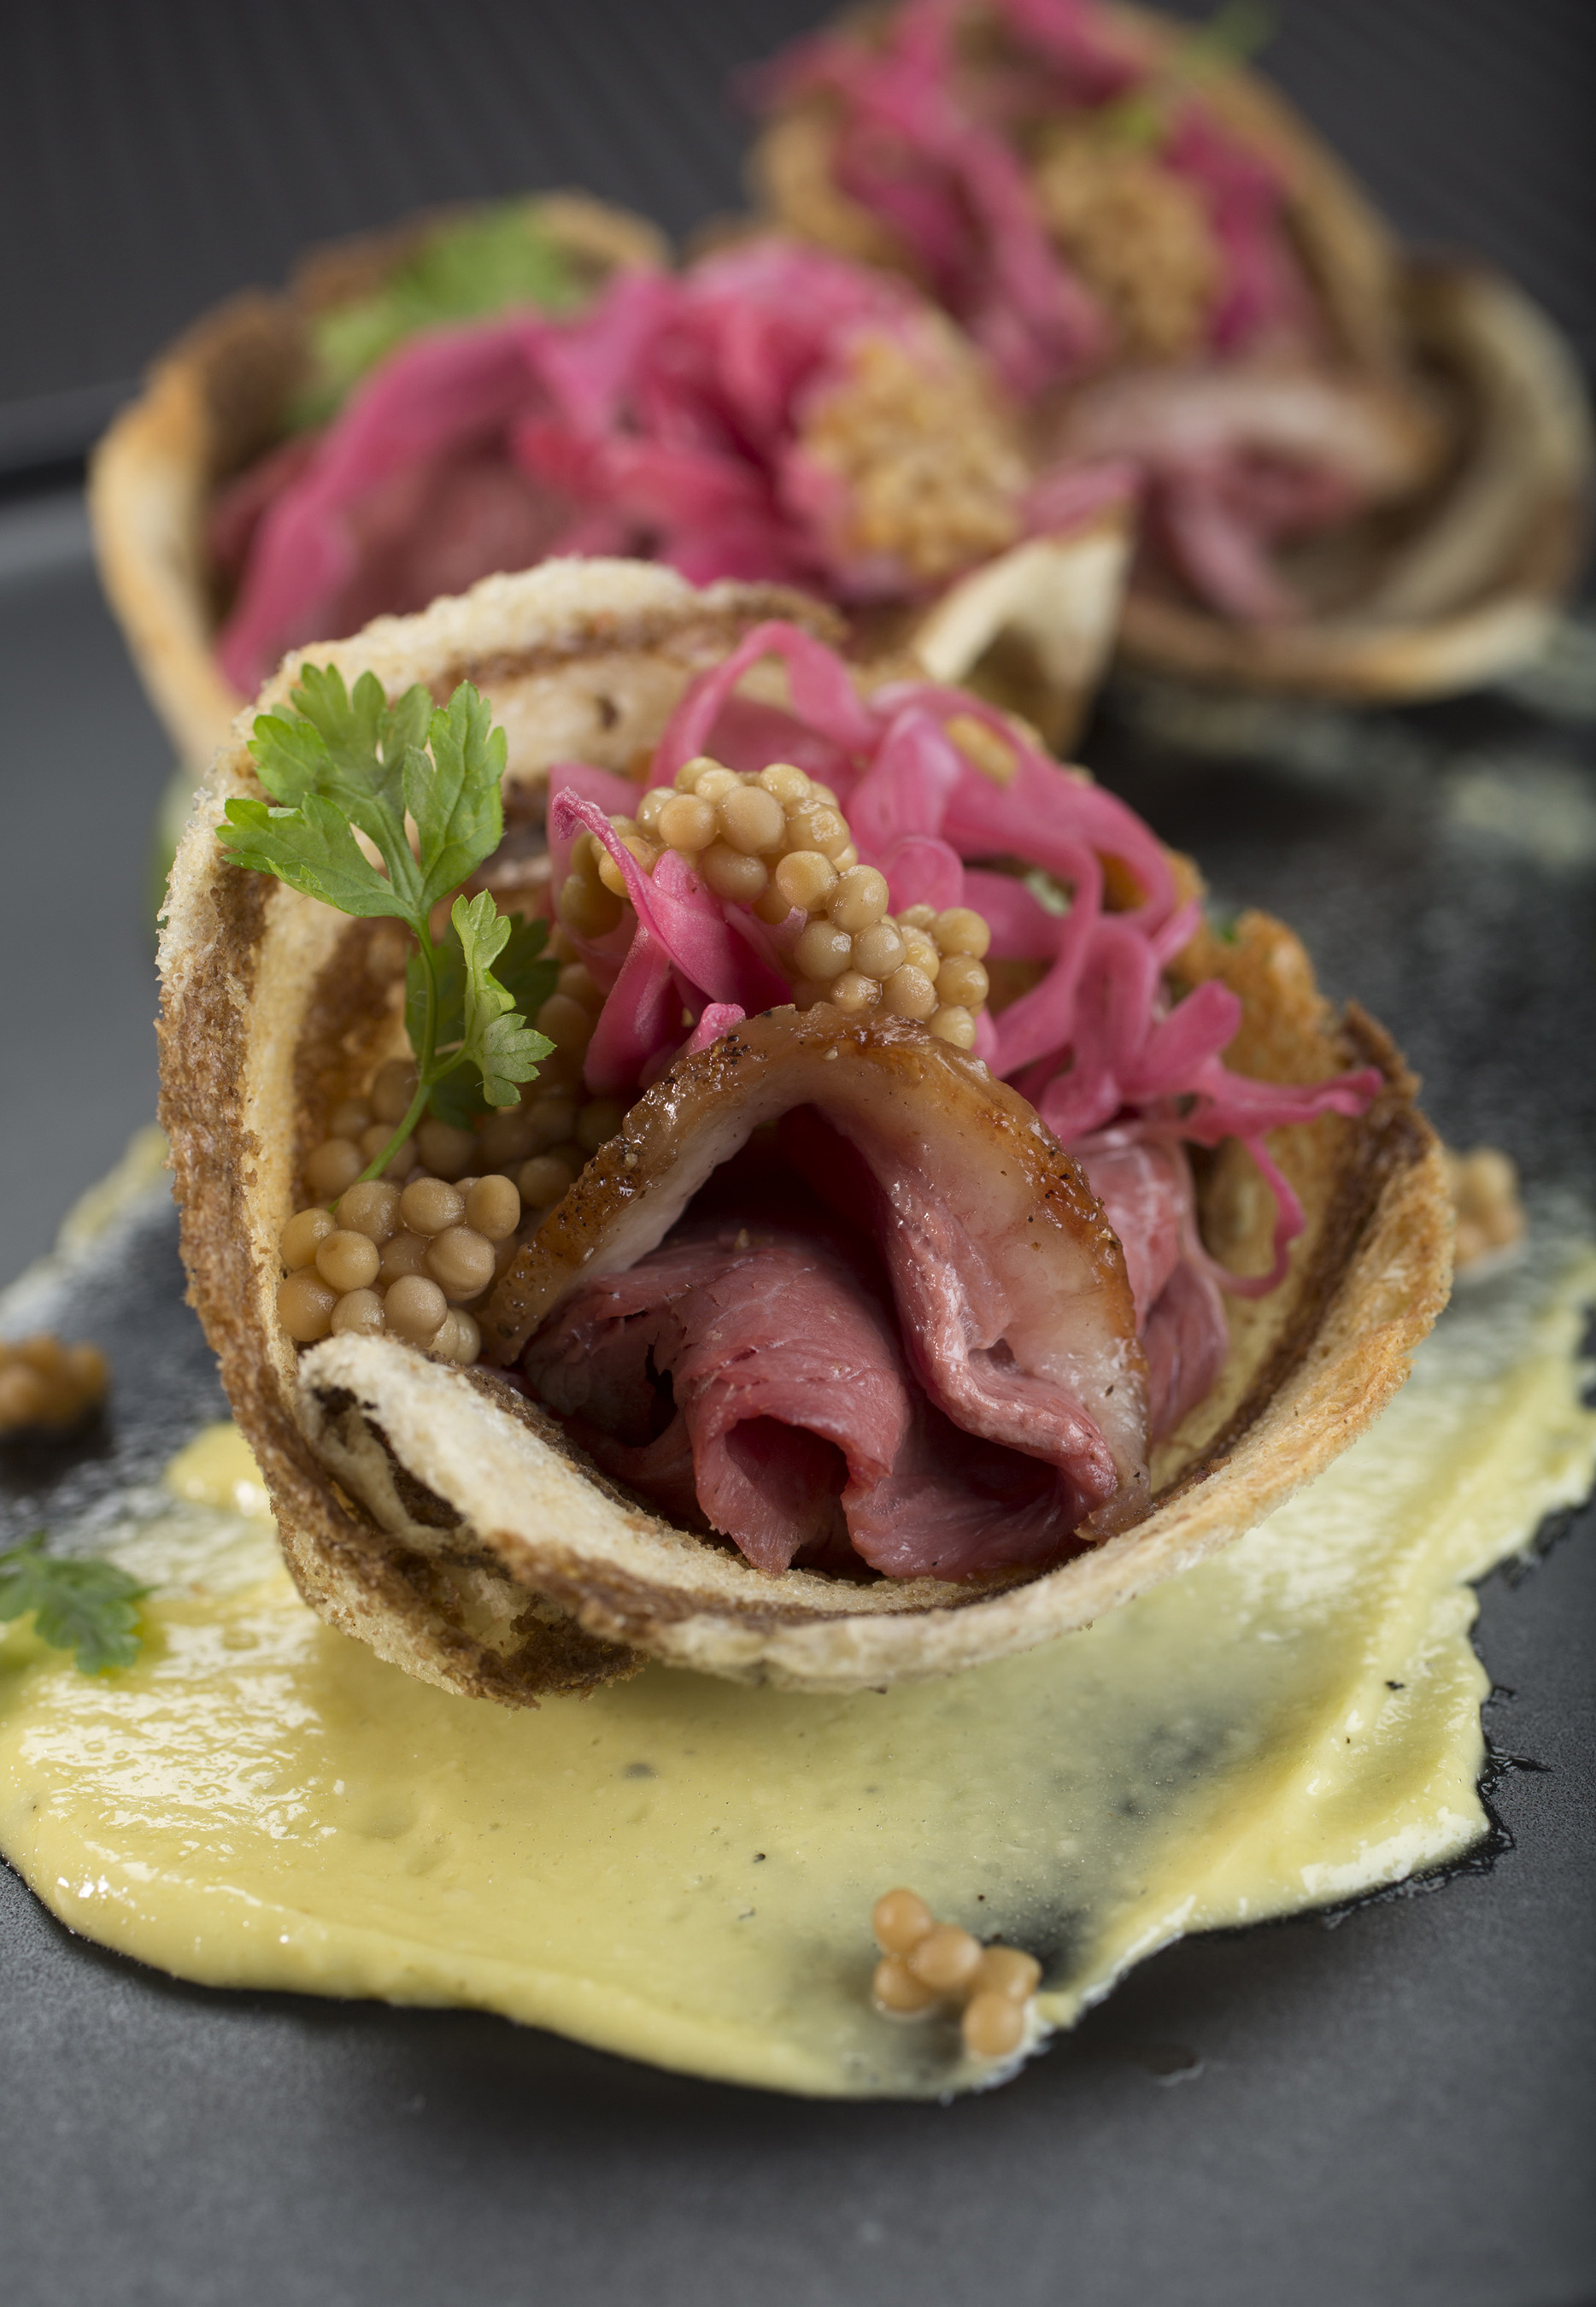 Savory duck pastrami topped with sauerkraut aioli, pickled radicchio and mustard seed all placed on a delicate yet crunchy piece of toast.